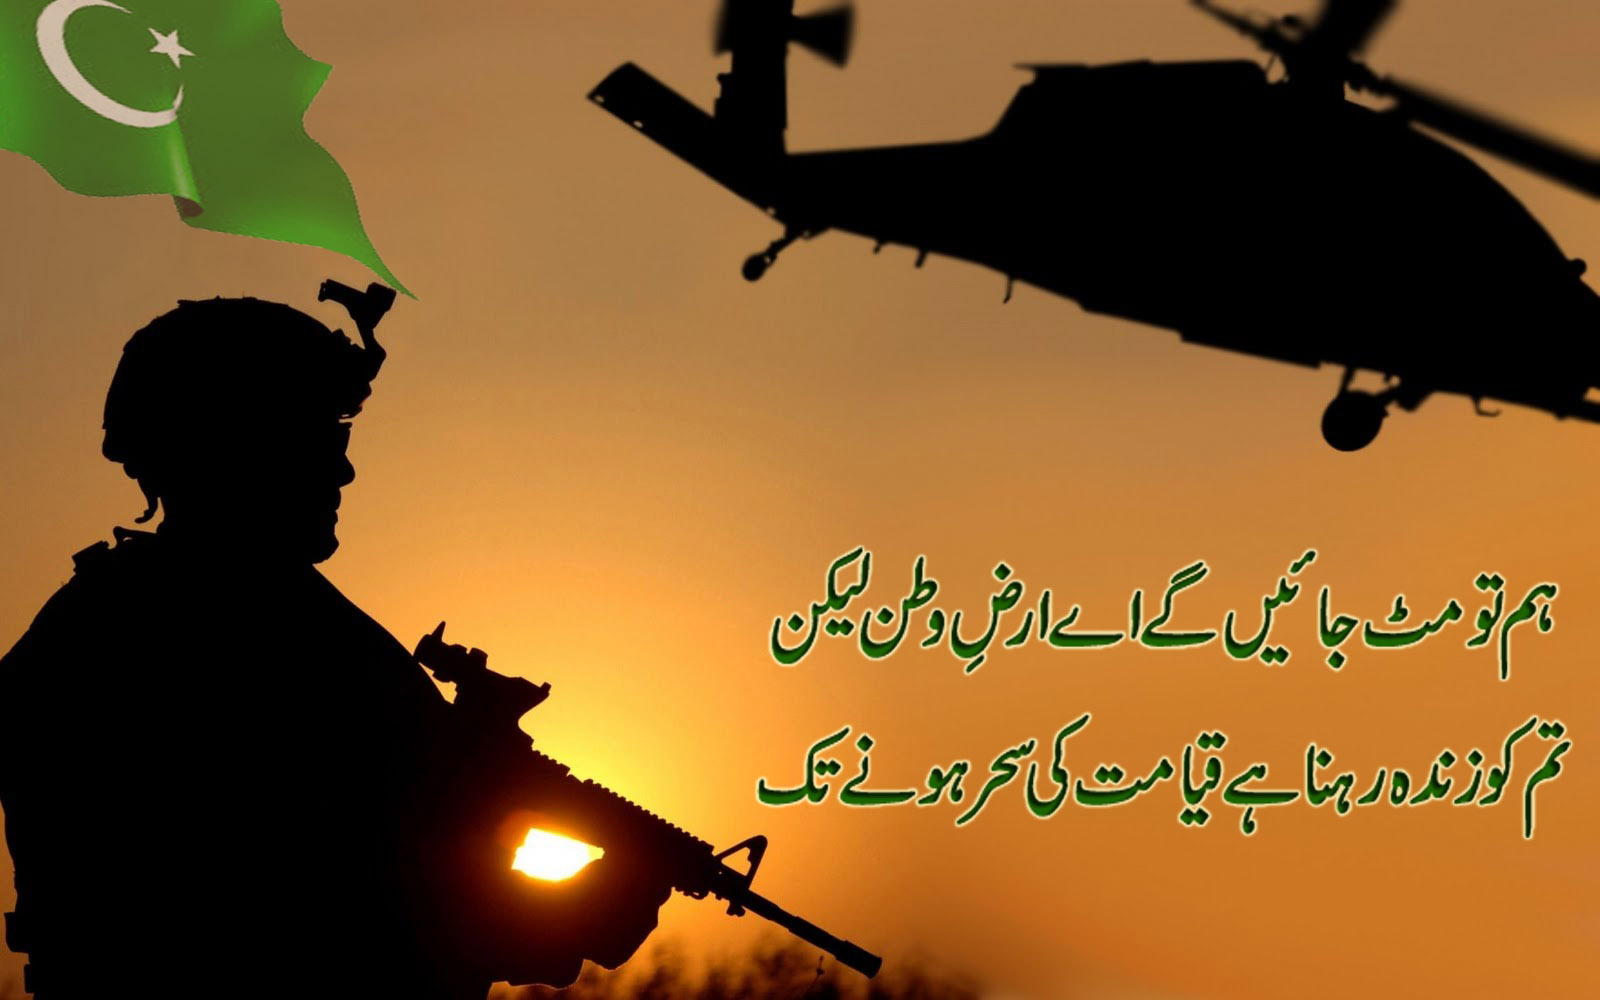 Army Love Hd Wallpaper : Pak army hd wallpapers moonlightforall.com